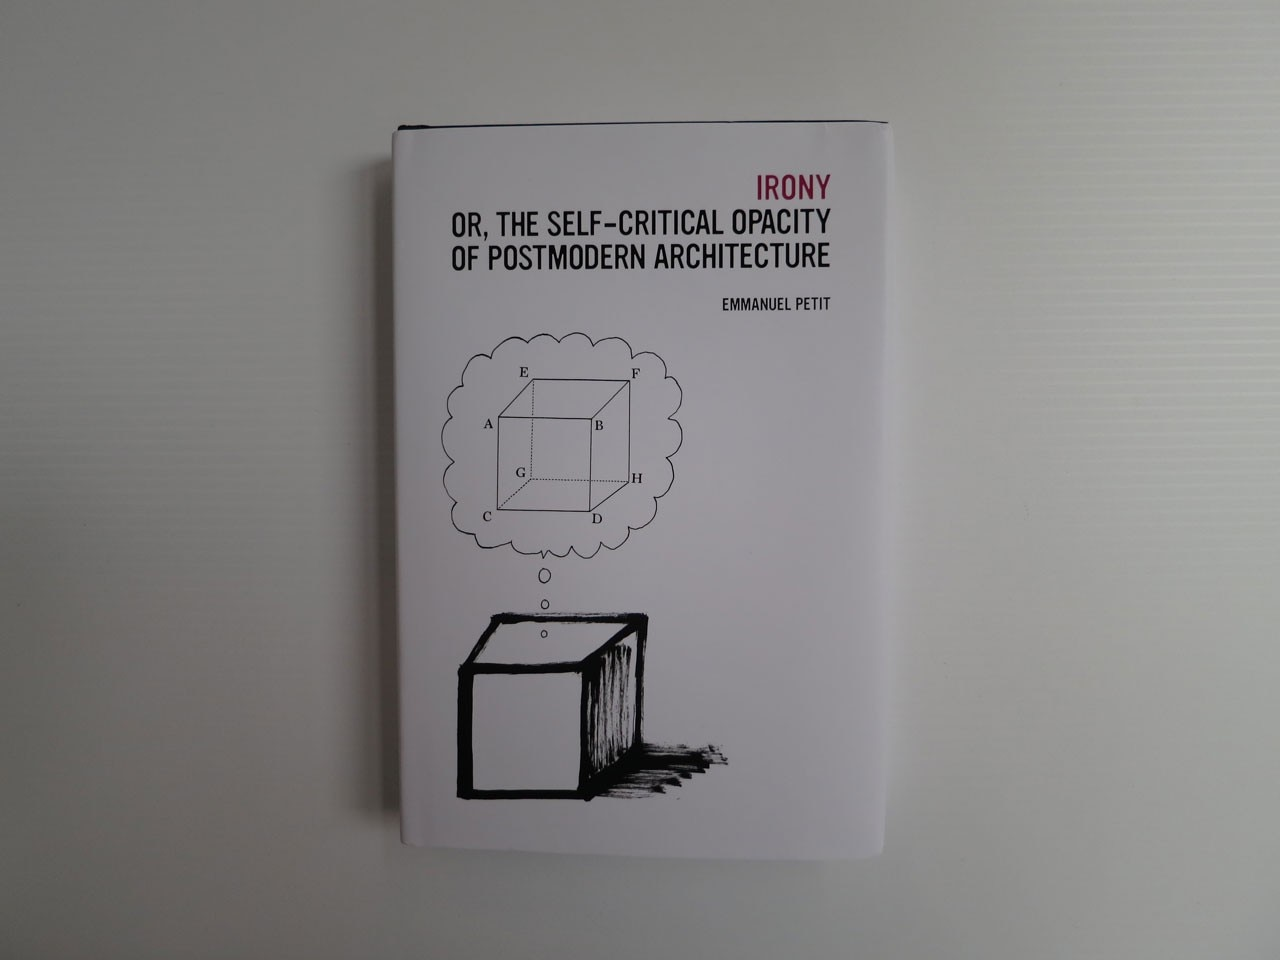 Emmanuel Petit, Irony; or, The Self-Critical Opacity of Postmodern Architecture, Yale Press 2013